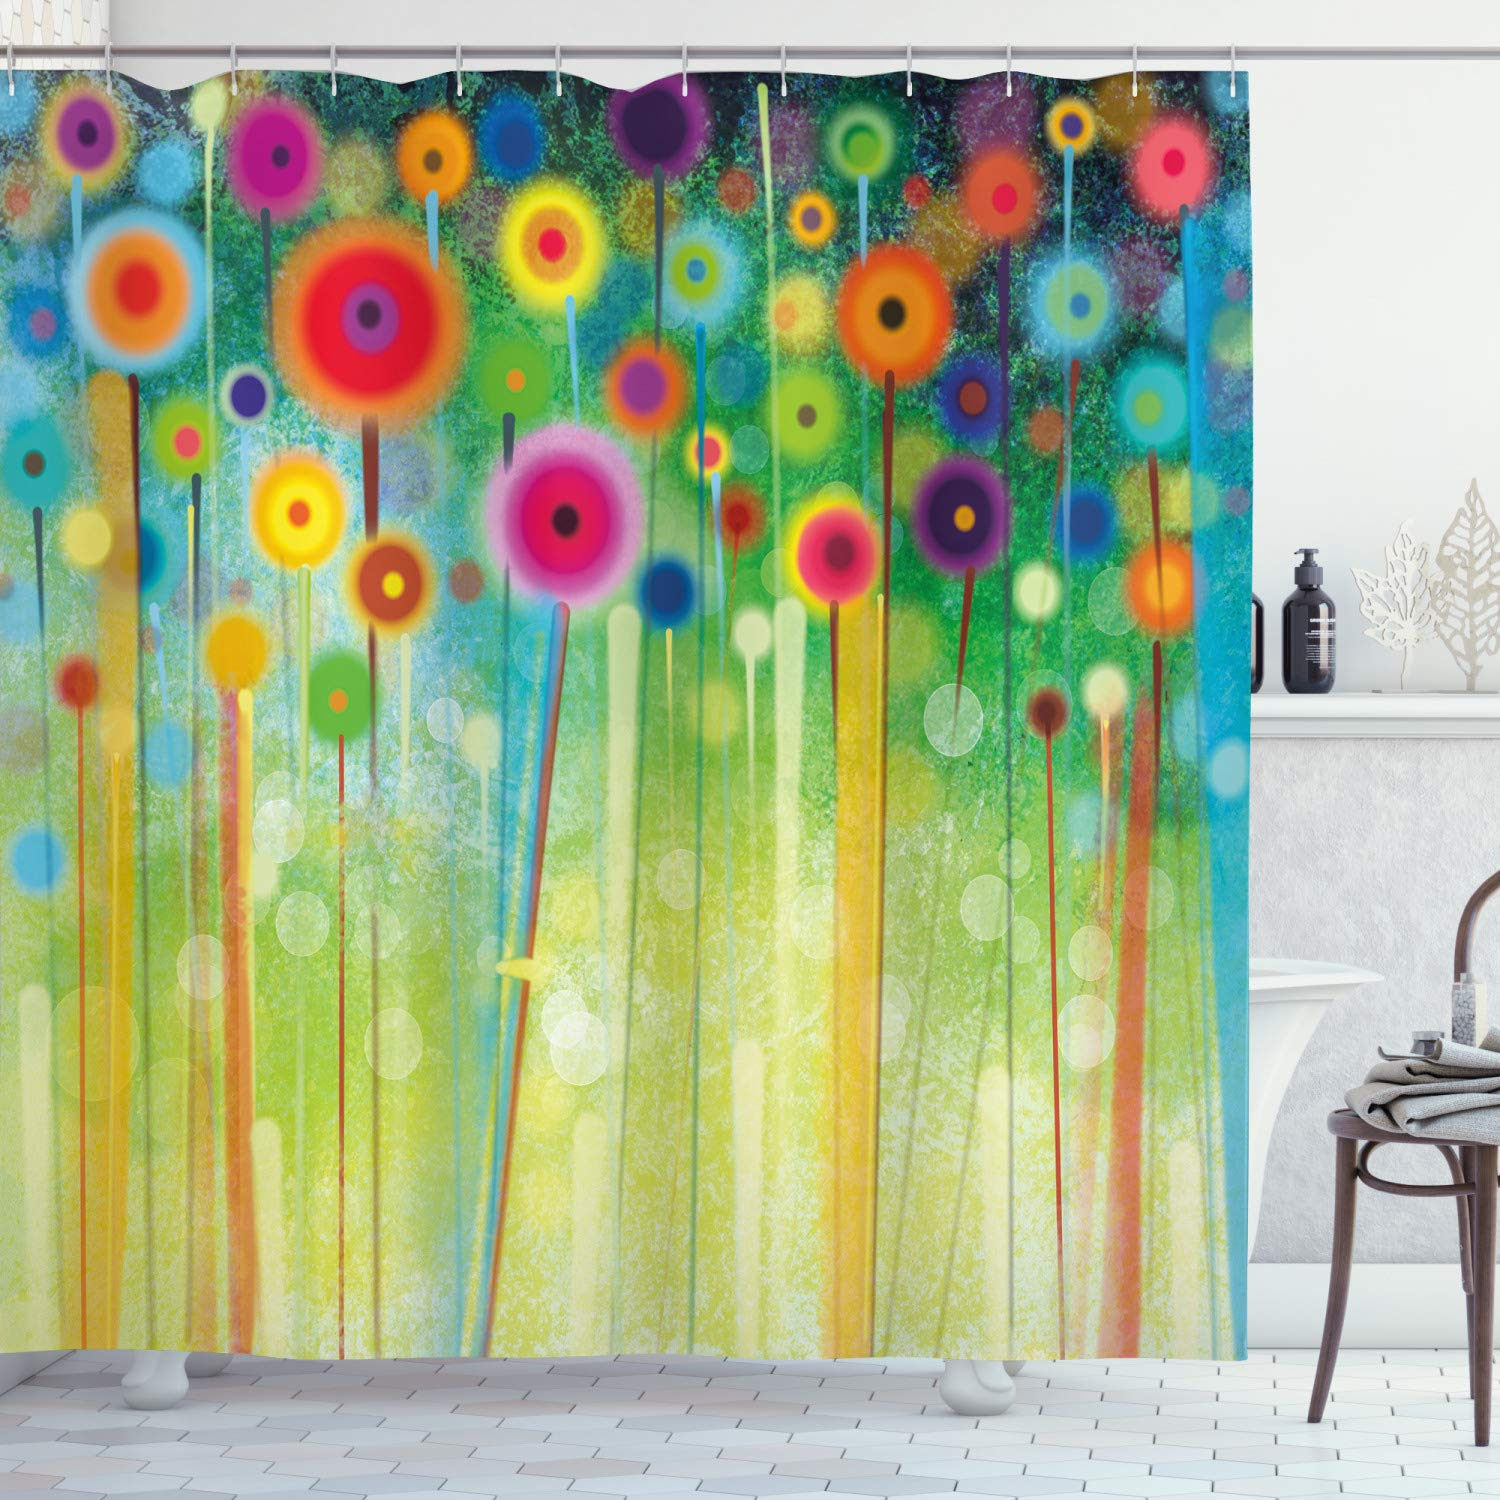 """Ambesonne Flower Shower Curtain, Abstract Dandelion Inspired Spiral Blooms Petals Geometrical Shapes Nature Art Theme, Cloth Fabric Bathroom Decor Set with Hooks, 75"""" Long, Pale Green"""